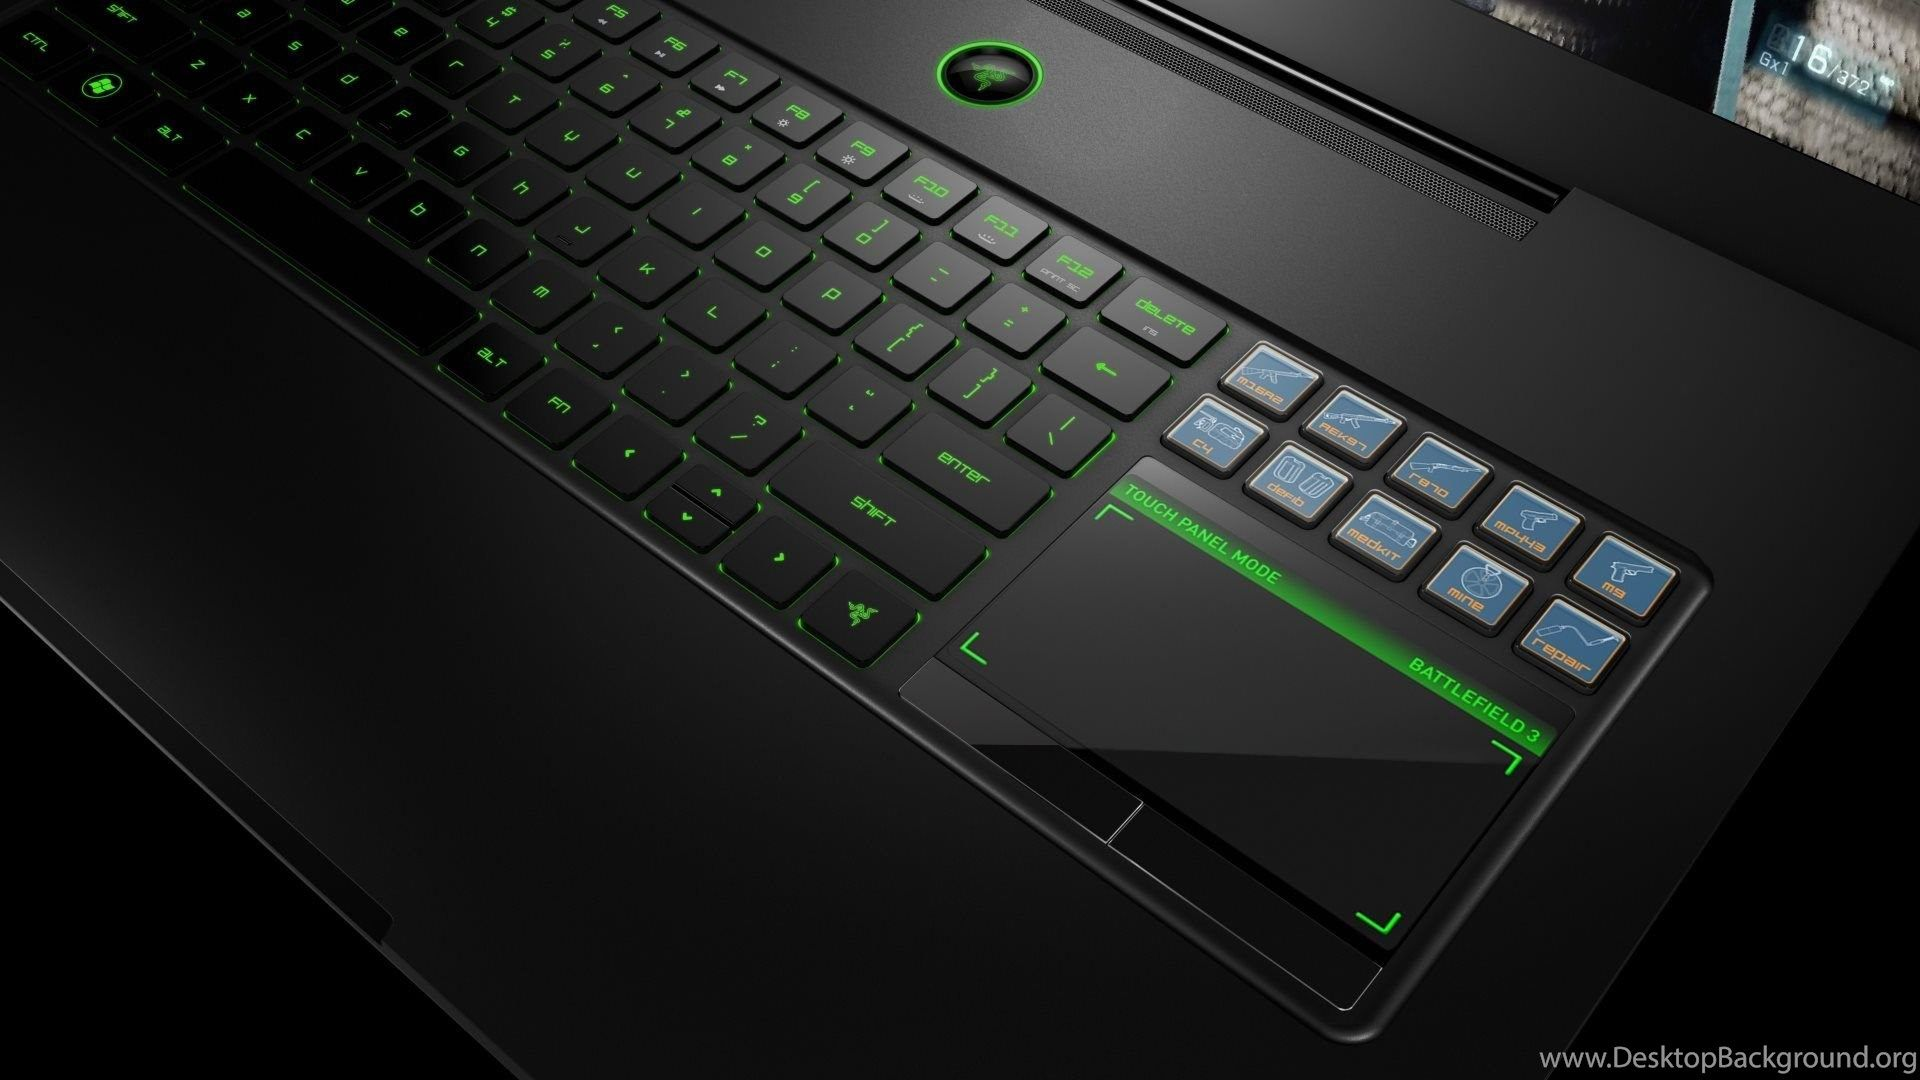 Laptop purchase guide